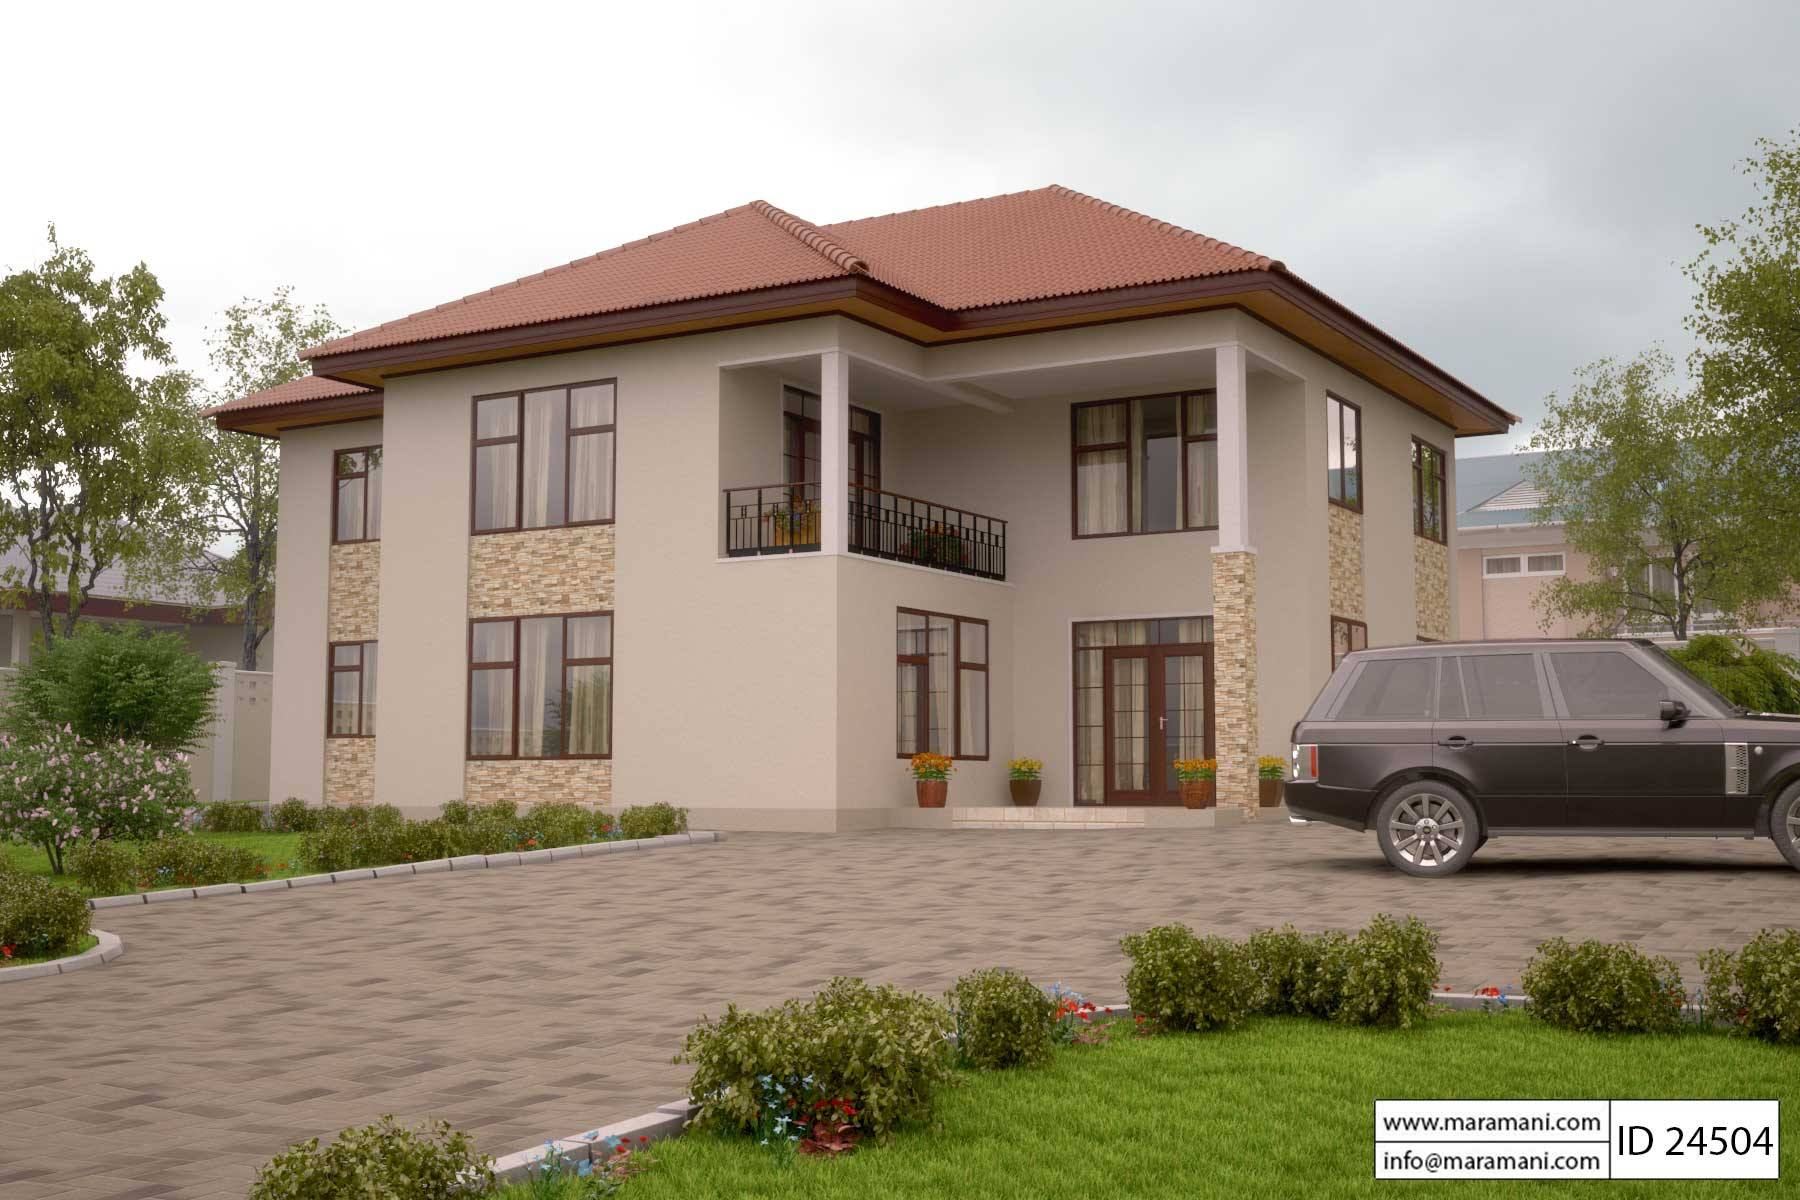 4 Bedroom House Plan   ID 24504